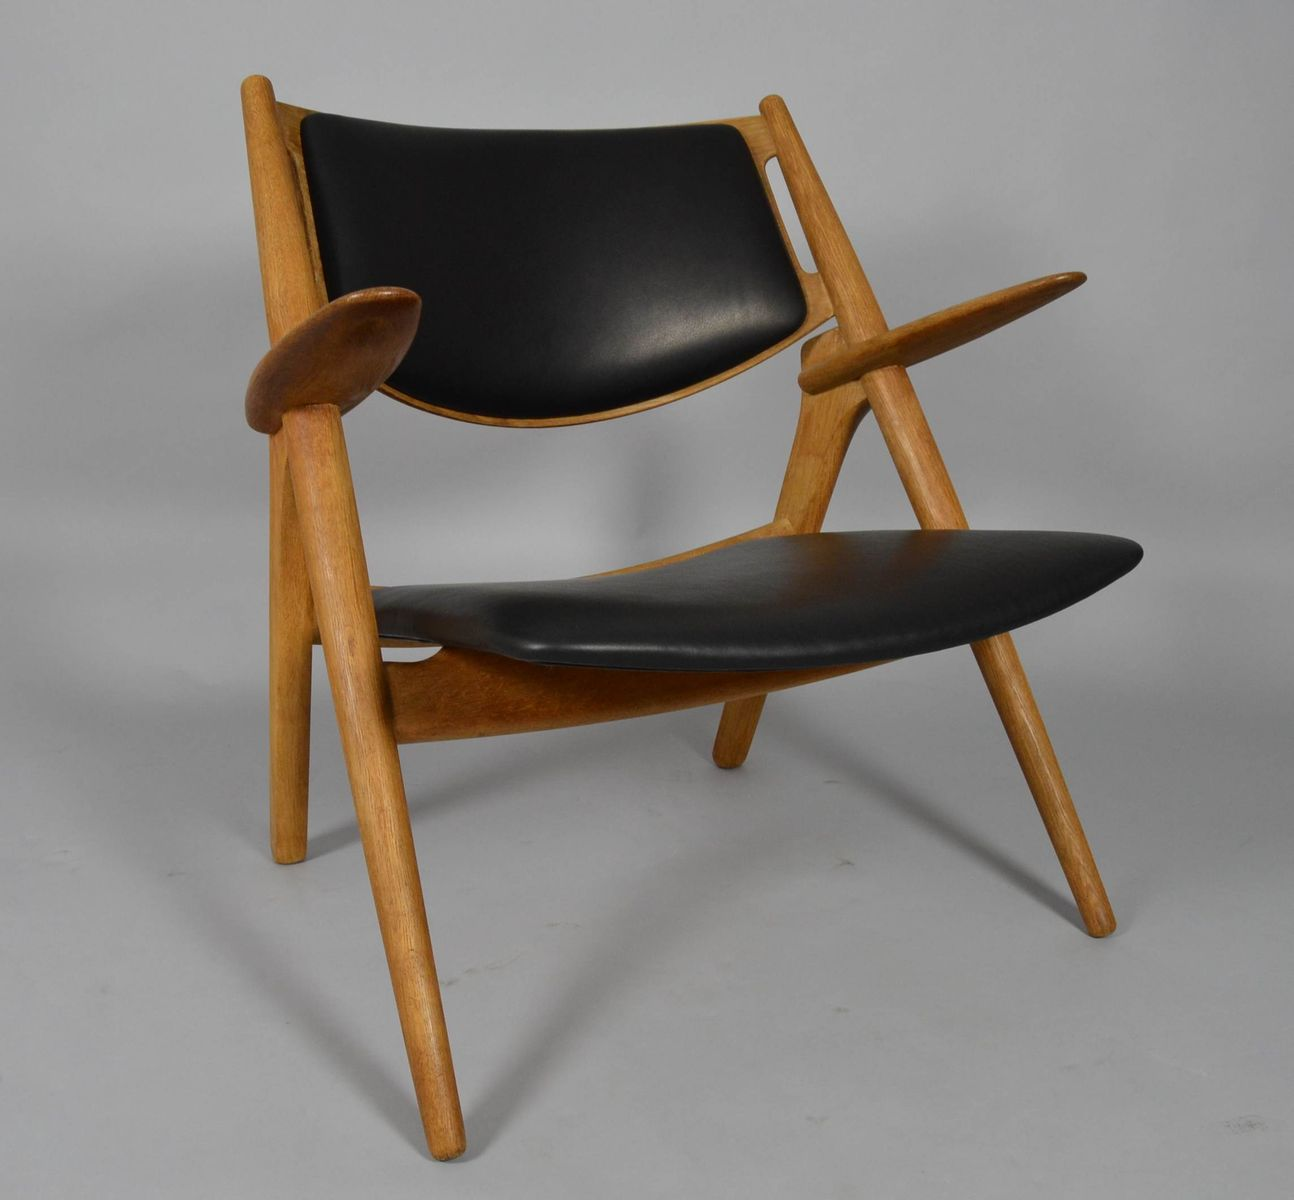 hans wegner stuhl hans wegner stool at 1stdibs vintage. Black Bedroom Furniture Sets. Home Design Ideas